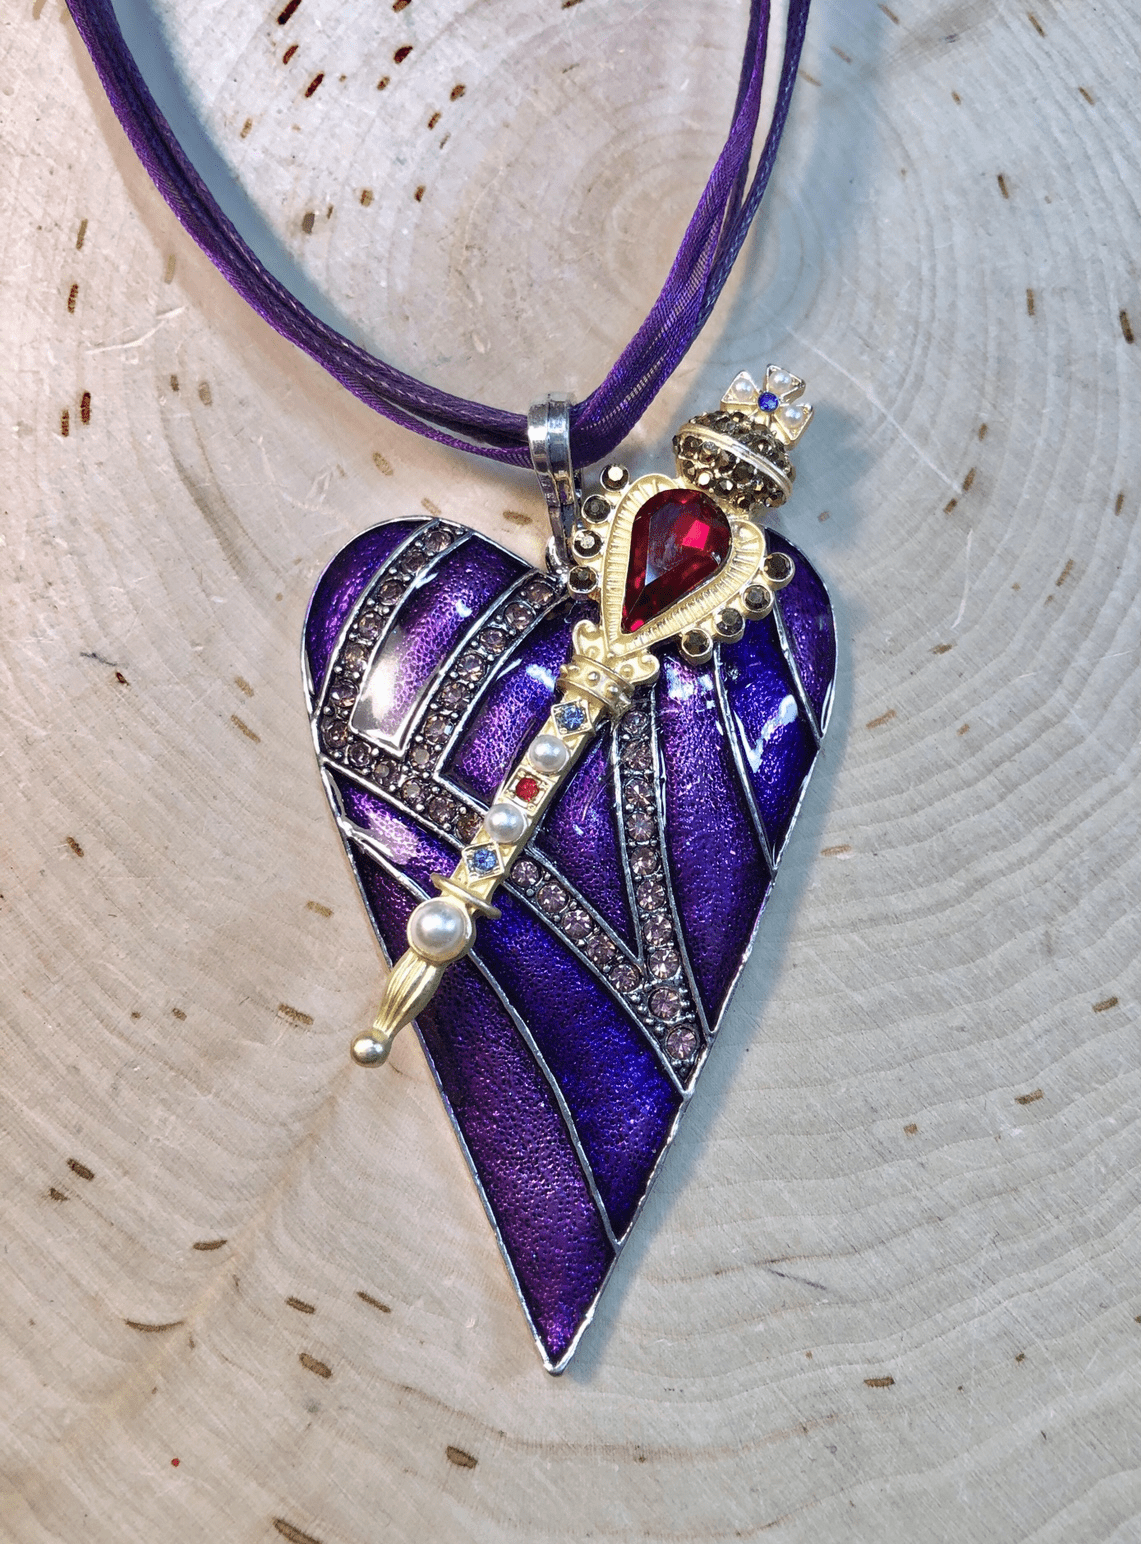 Receive your Purple Heart and Scepter from the King!